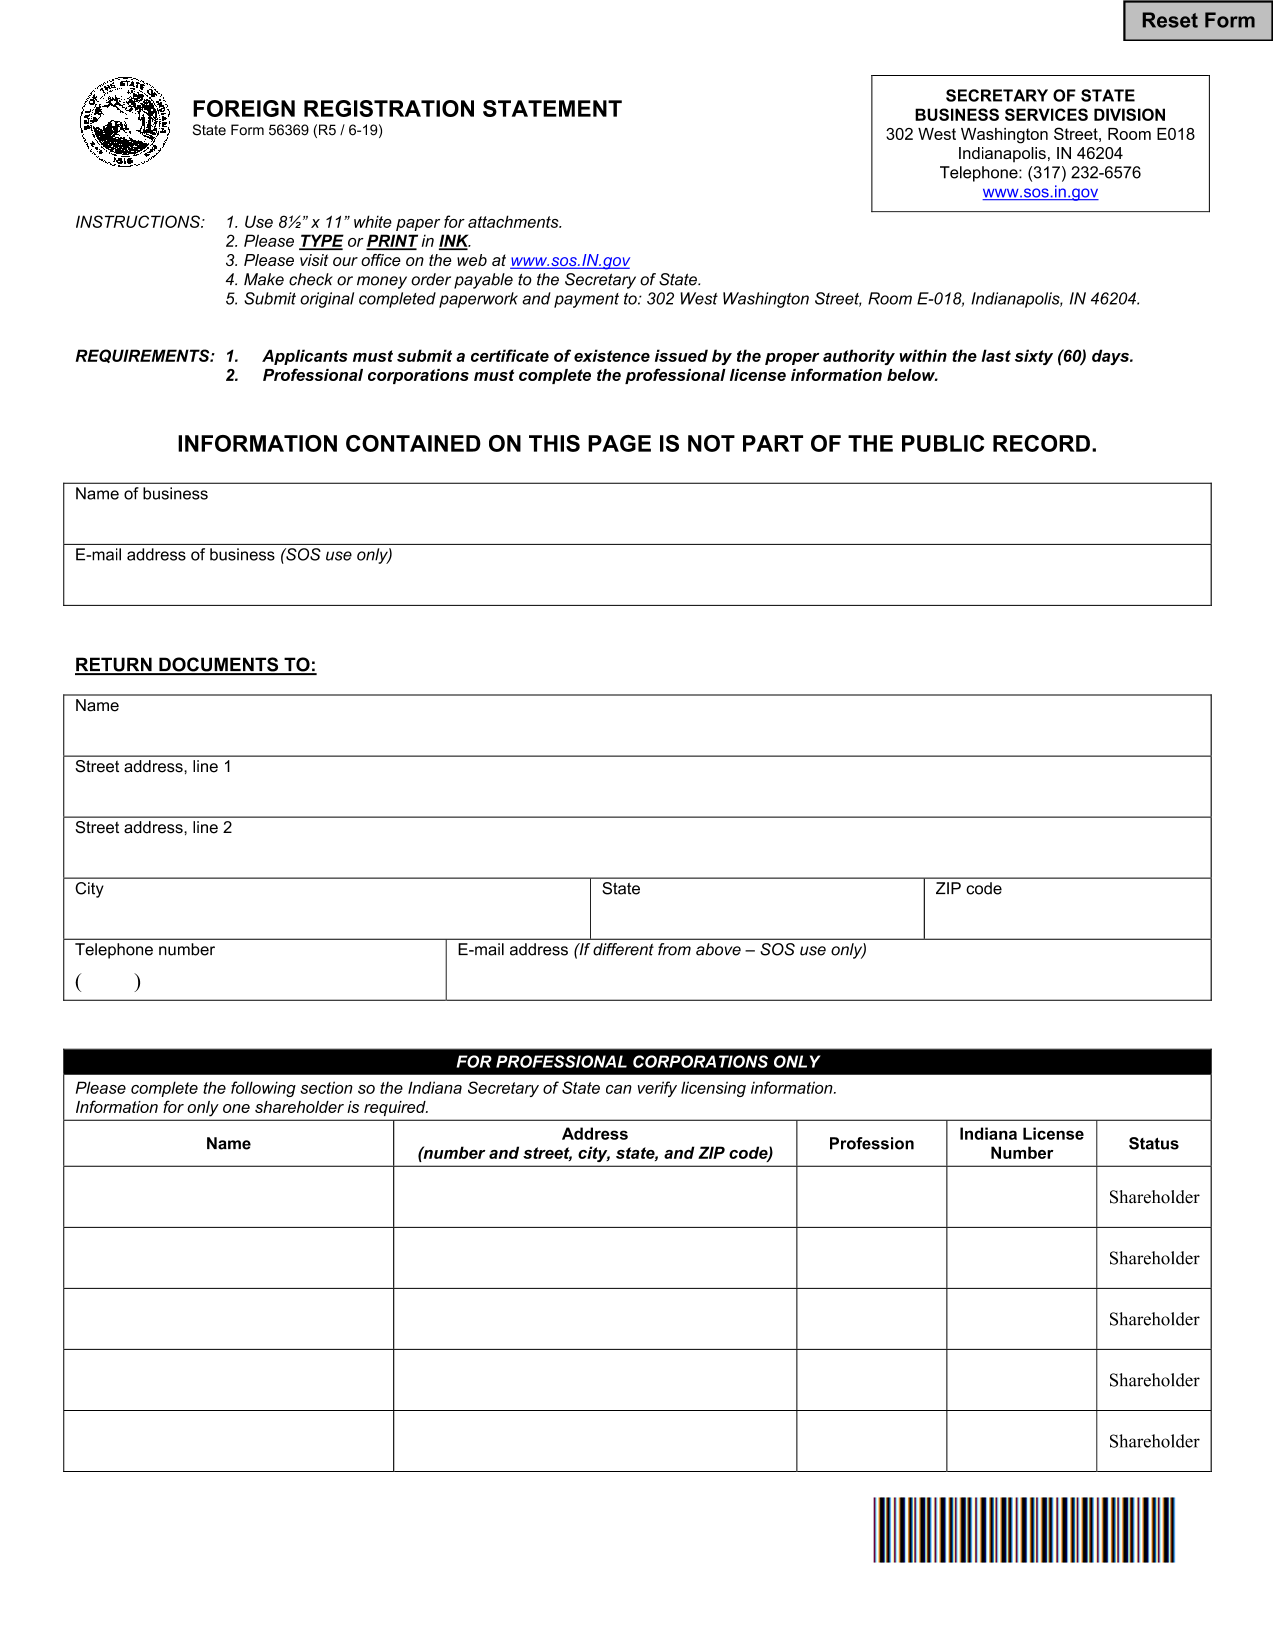 indiana-application-for-certificate-of-authority-of-a-foreign-corporation